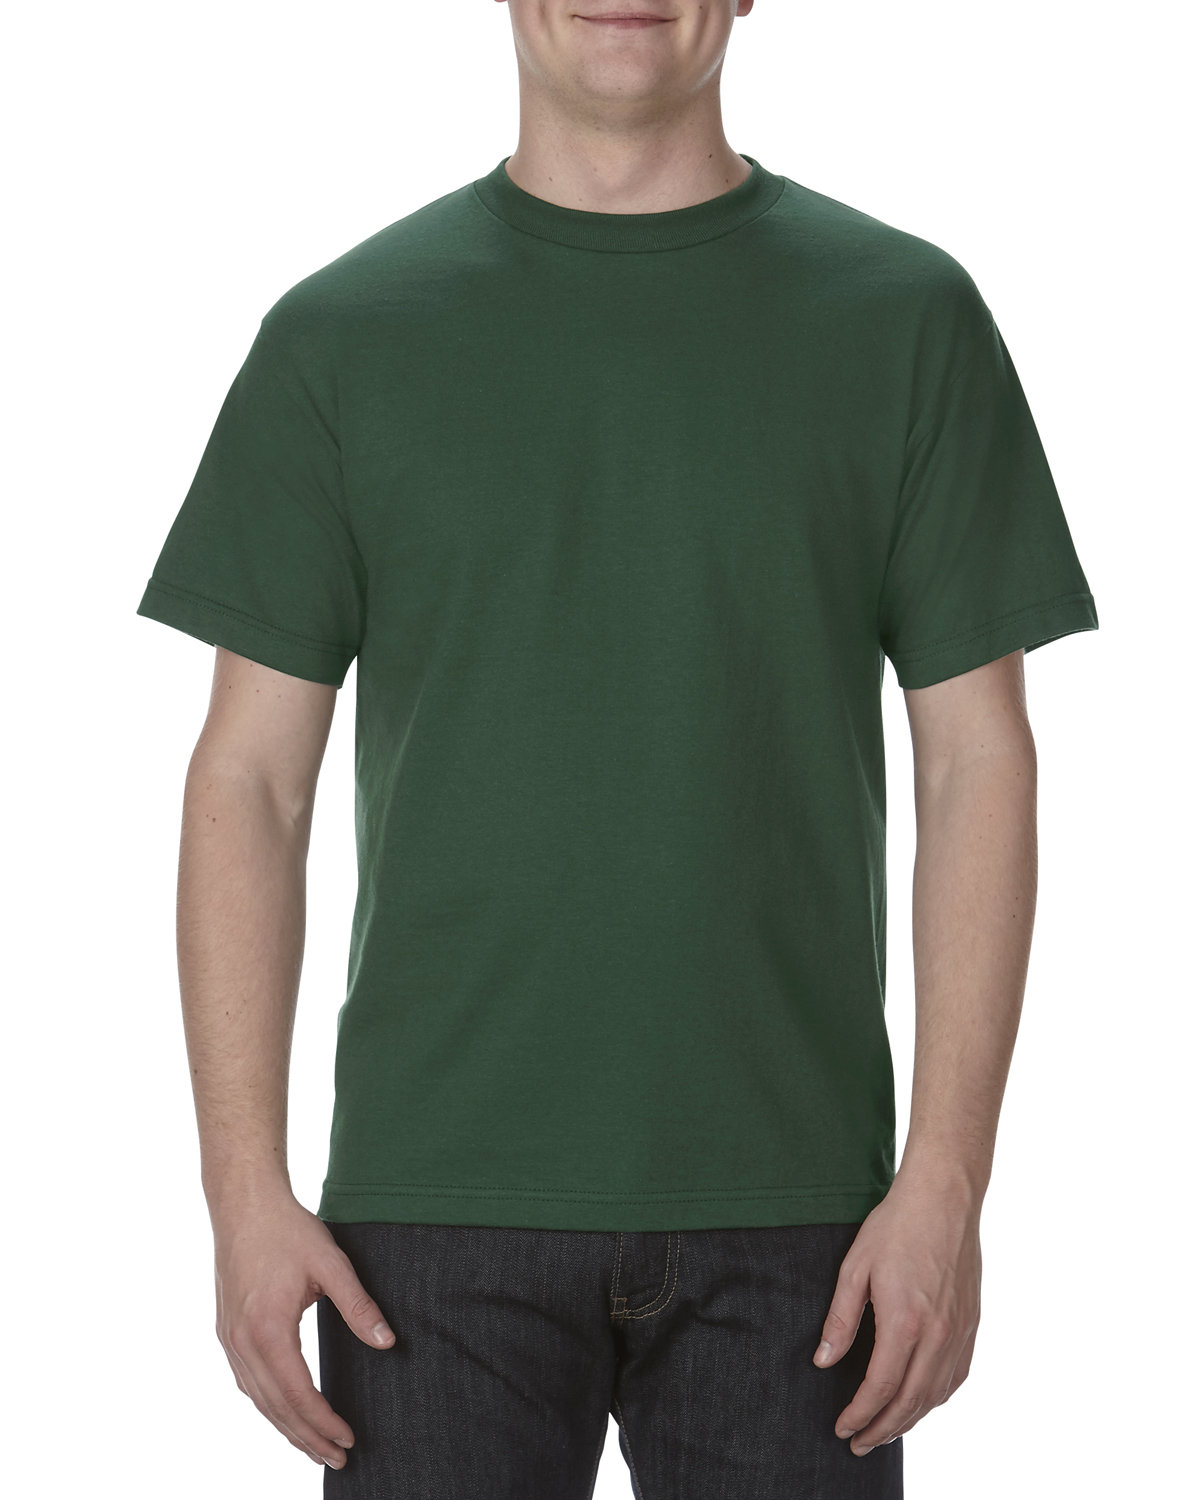 Alstyle Adult 6.0 oz., 100% Cotton T-Shirt FOREST GREEN